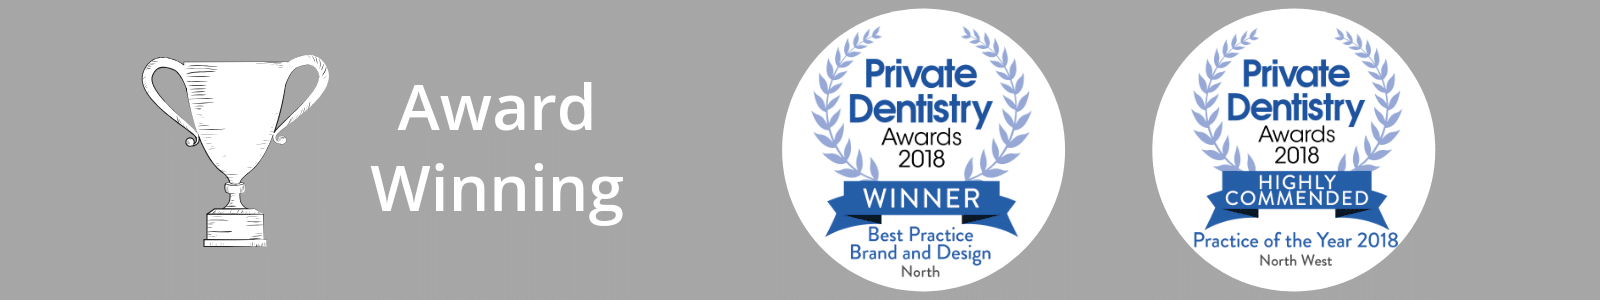 Private Dentistry Awards Winners